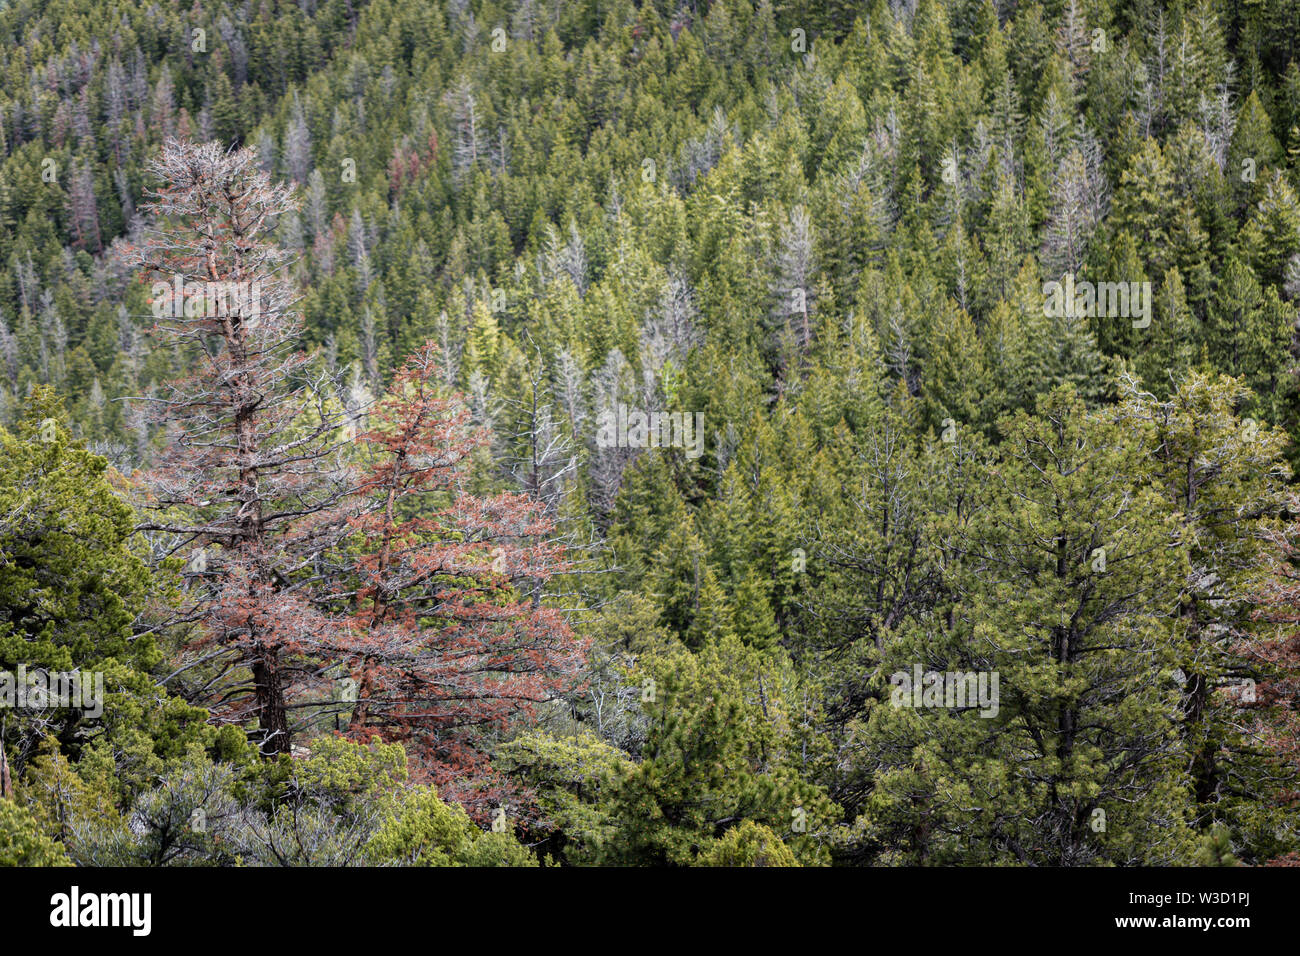 Bark beetle kills conifer trees in the Uinta Mountains of Utah. Stock Photo